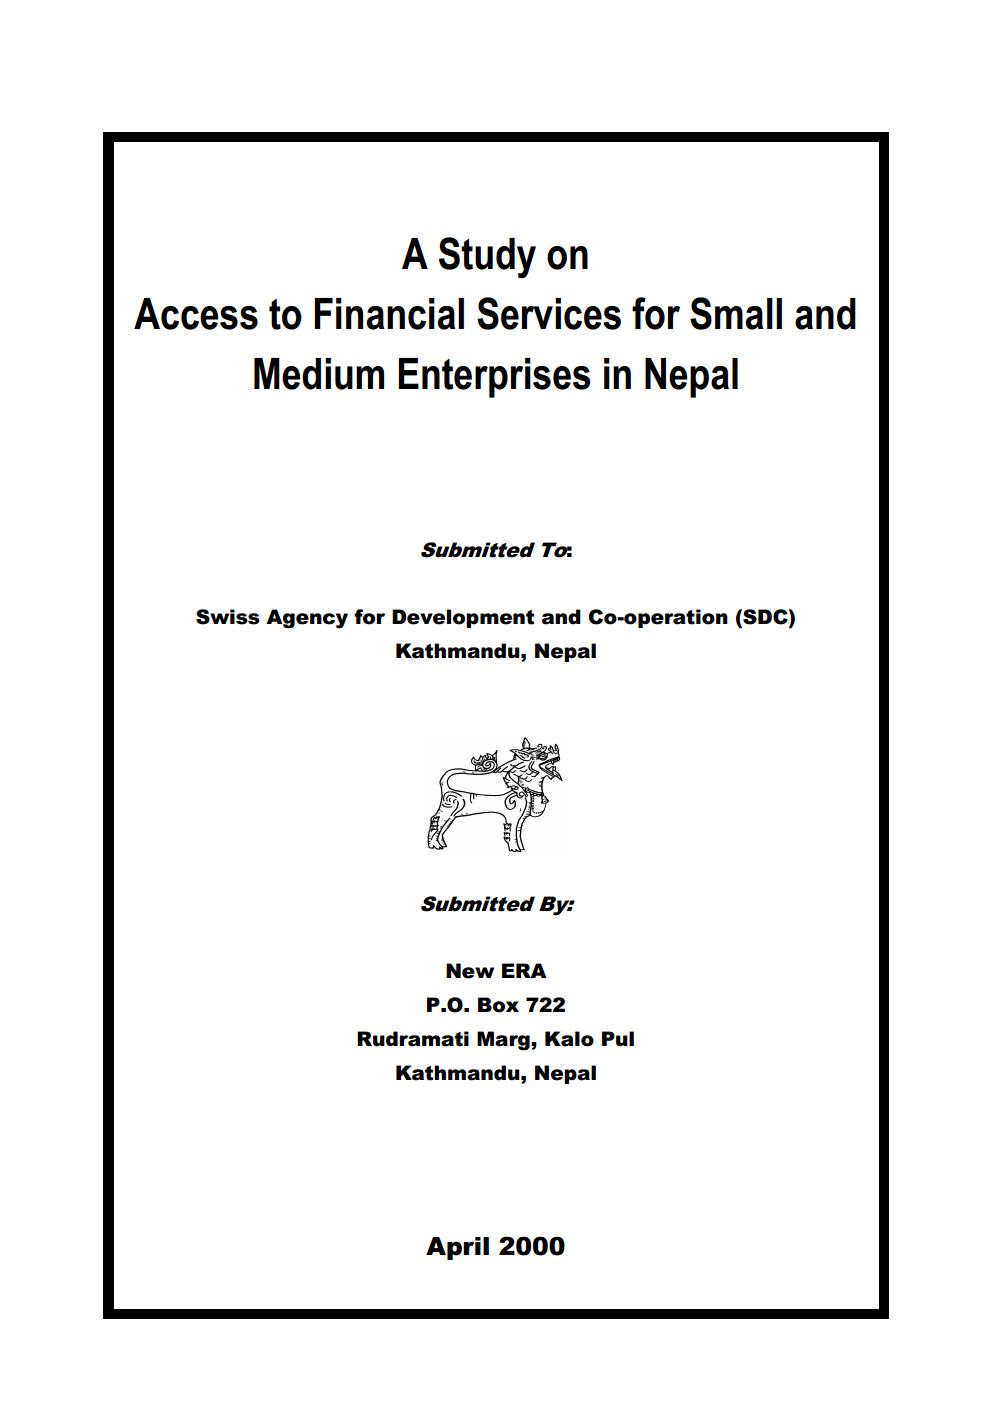 A Study on Access to Financial Services for Small and Medium Enterprises in Nepal